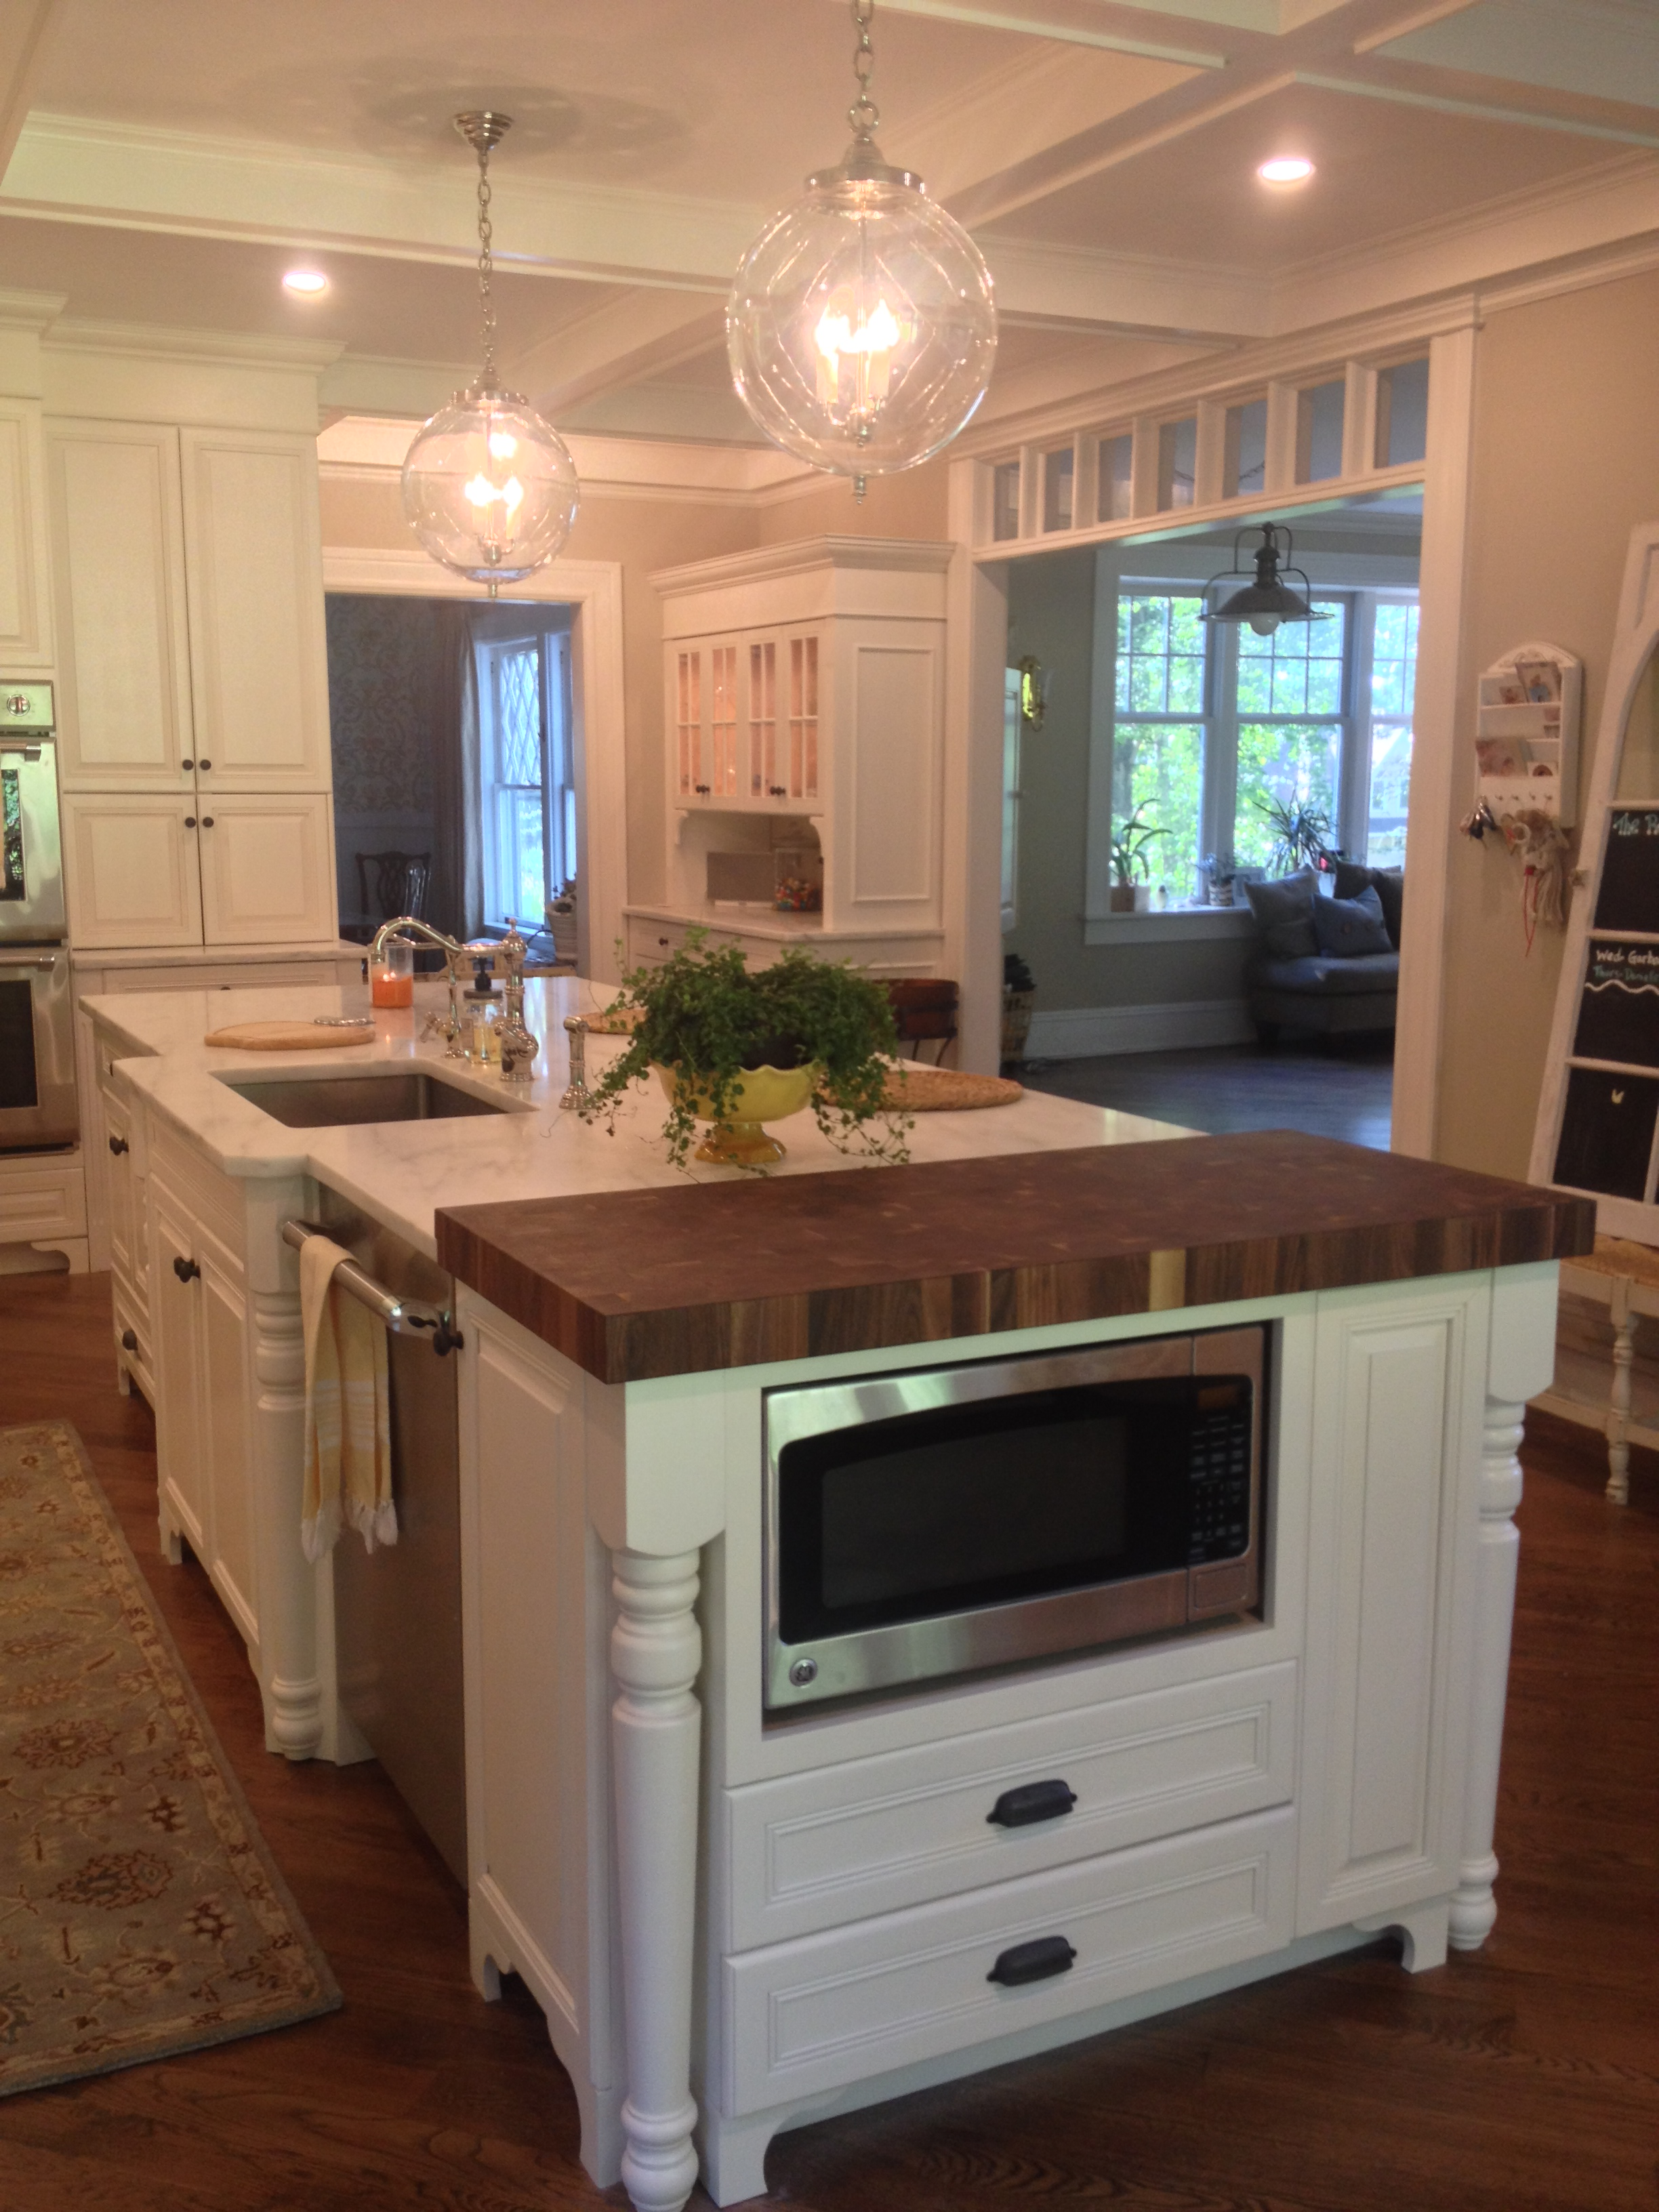 Walnut Butcher Block Customer Review Mountain Lakes, NJ